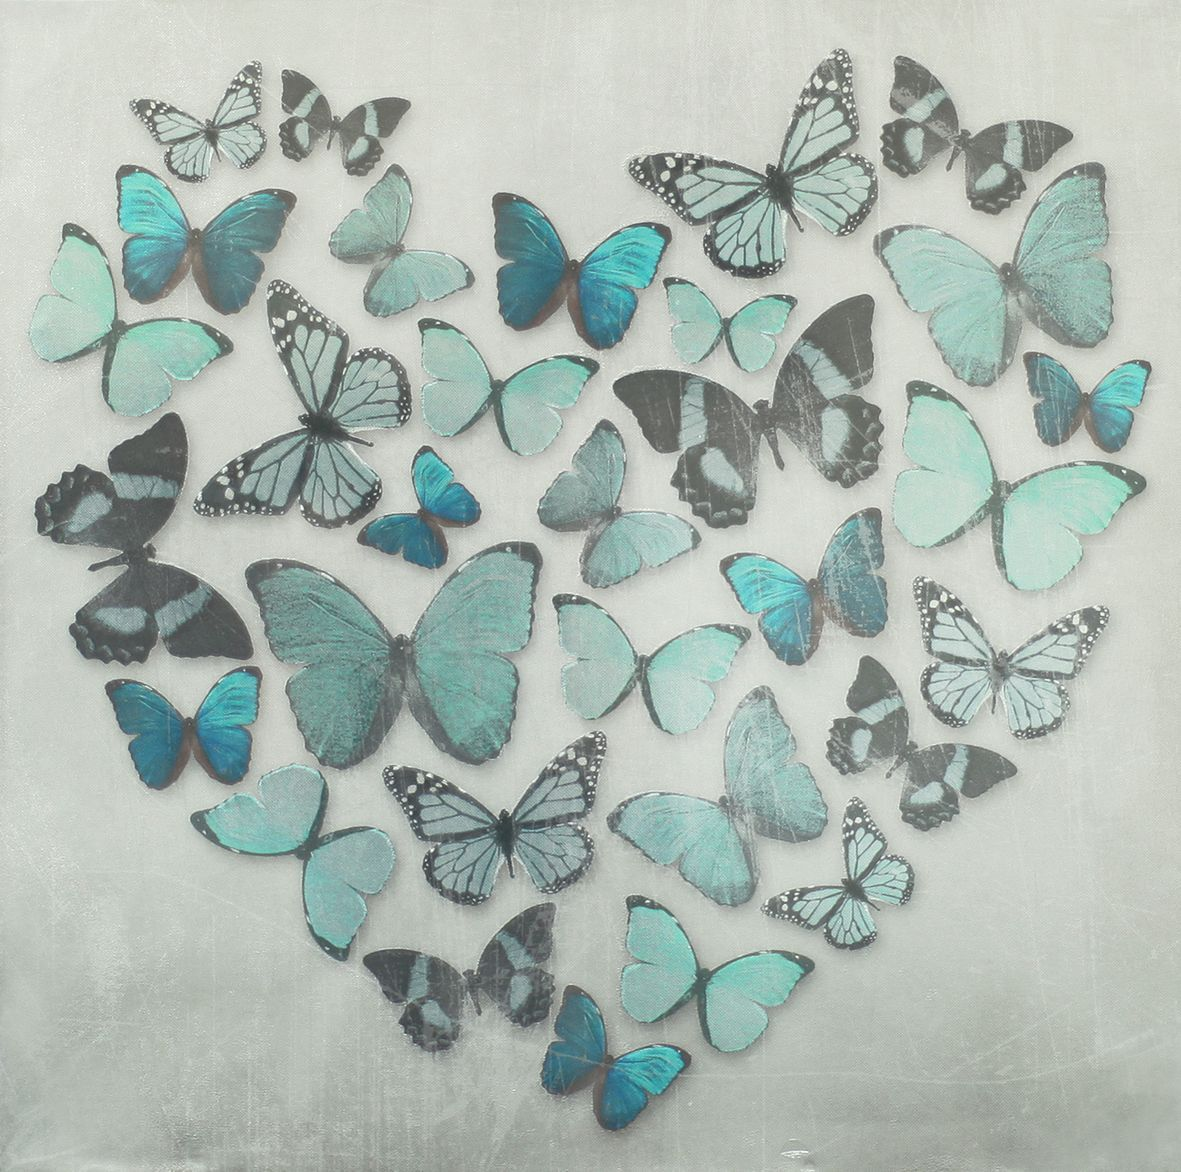 Butterfly Love Teal Superfoil Canvas   Arthouse Art   A Superfoil Printed  Canvas Image Of Butterflies In A Heart Shape   Coloured Teal Blue Green  With A ... Part 57